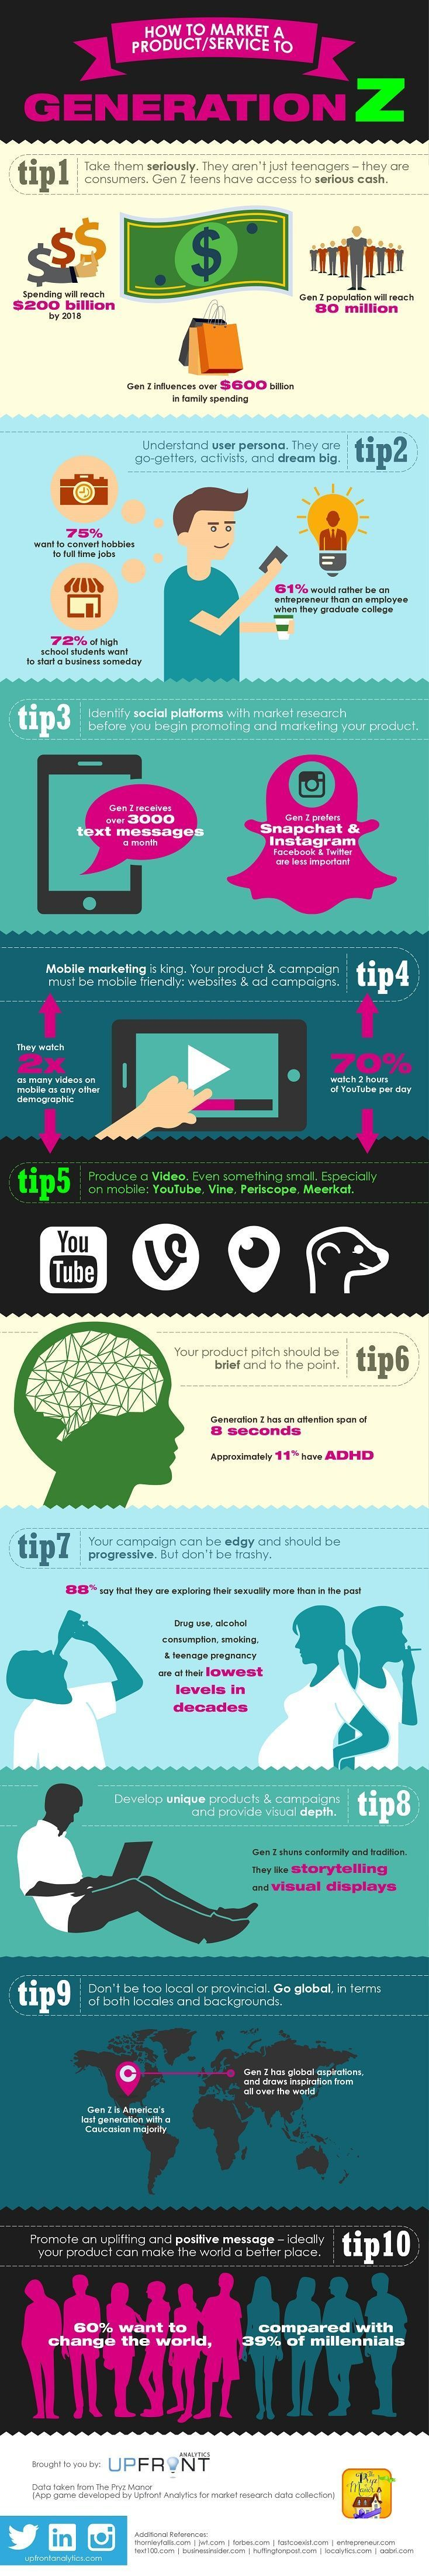 How To Market A Product Service To Generation Z Infographic Howto Marketing Infographic Marketing Generation Z Marketing